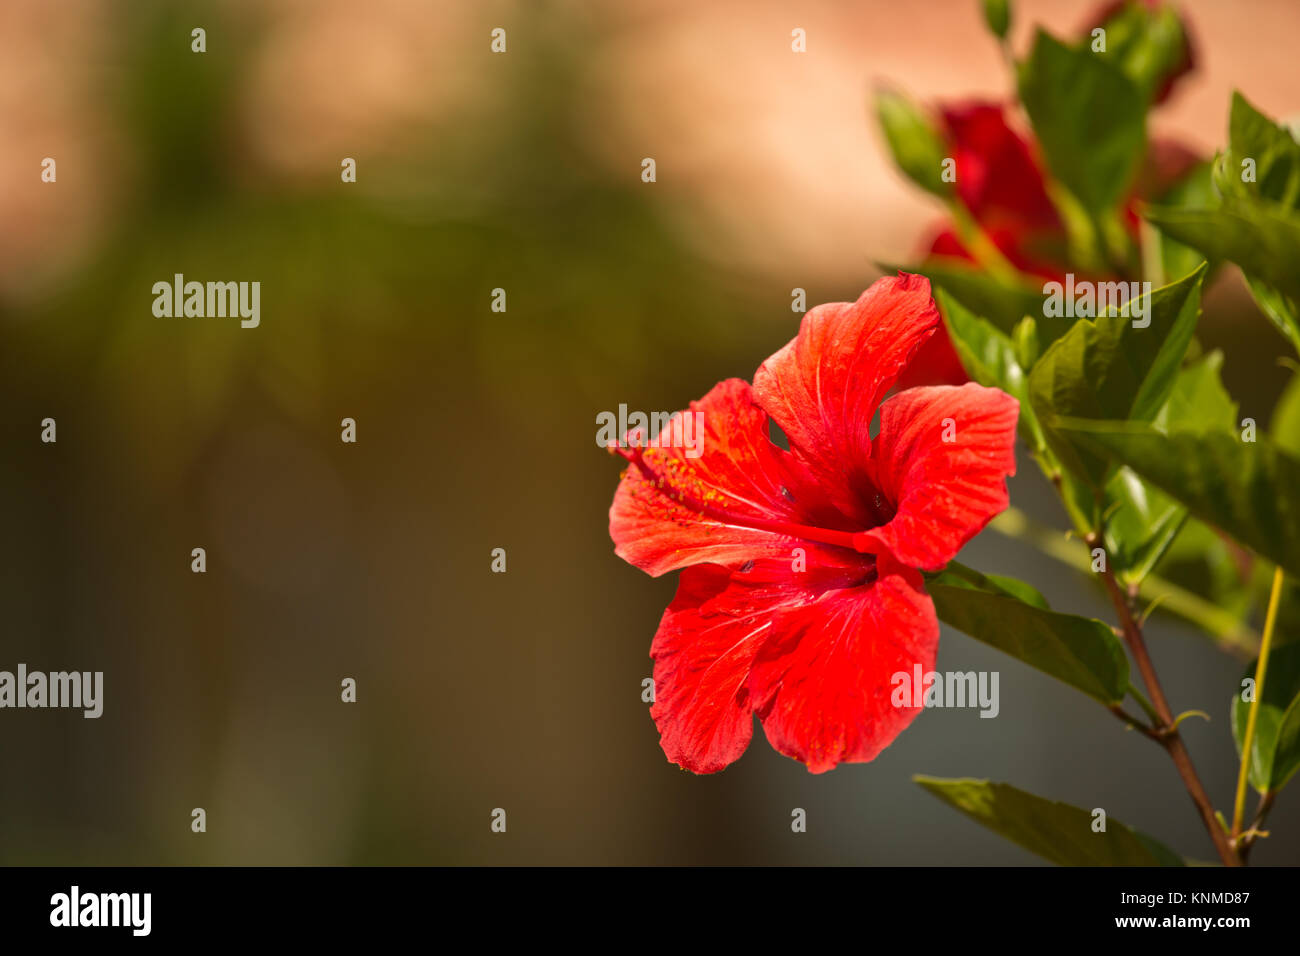 Red flower free arranged space for your message - Stock Image